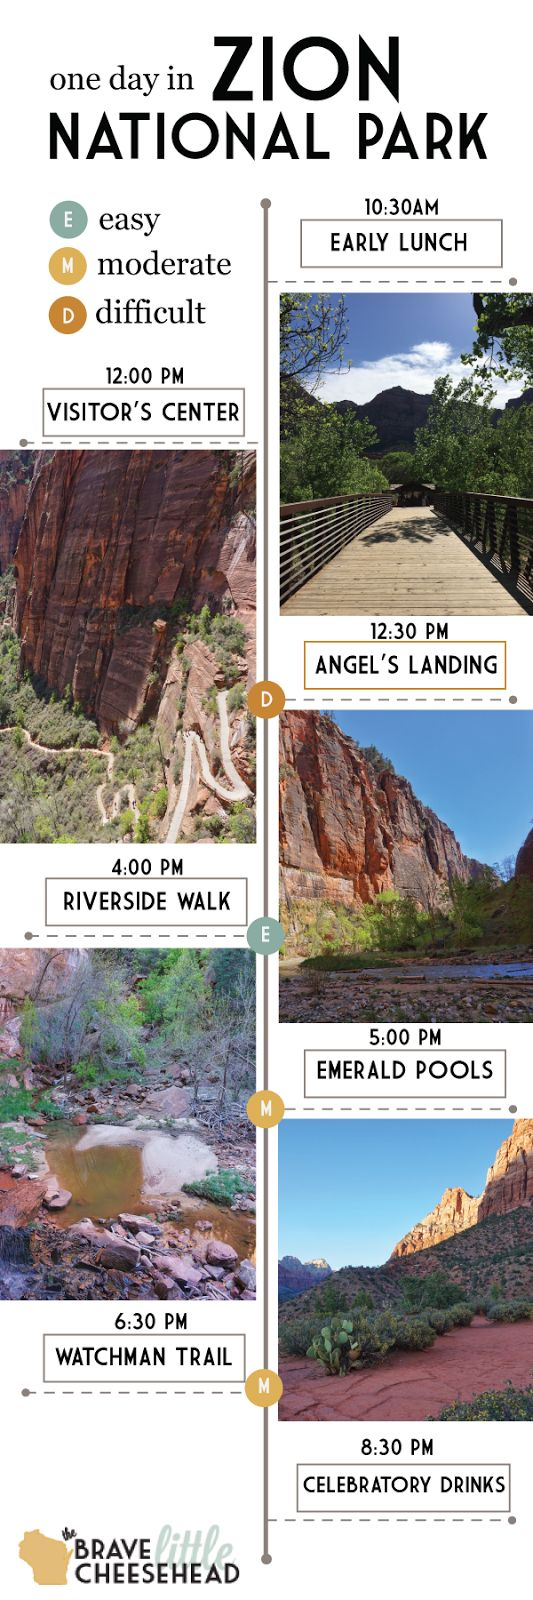 Zion National Park in Utah is divided into two sections. If you only have one day, plan to spend it in Zion Canyon. In only 8 hours, you can tackle four great hikes and soak up some of the most spectacular views the park has to offer.: